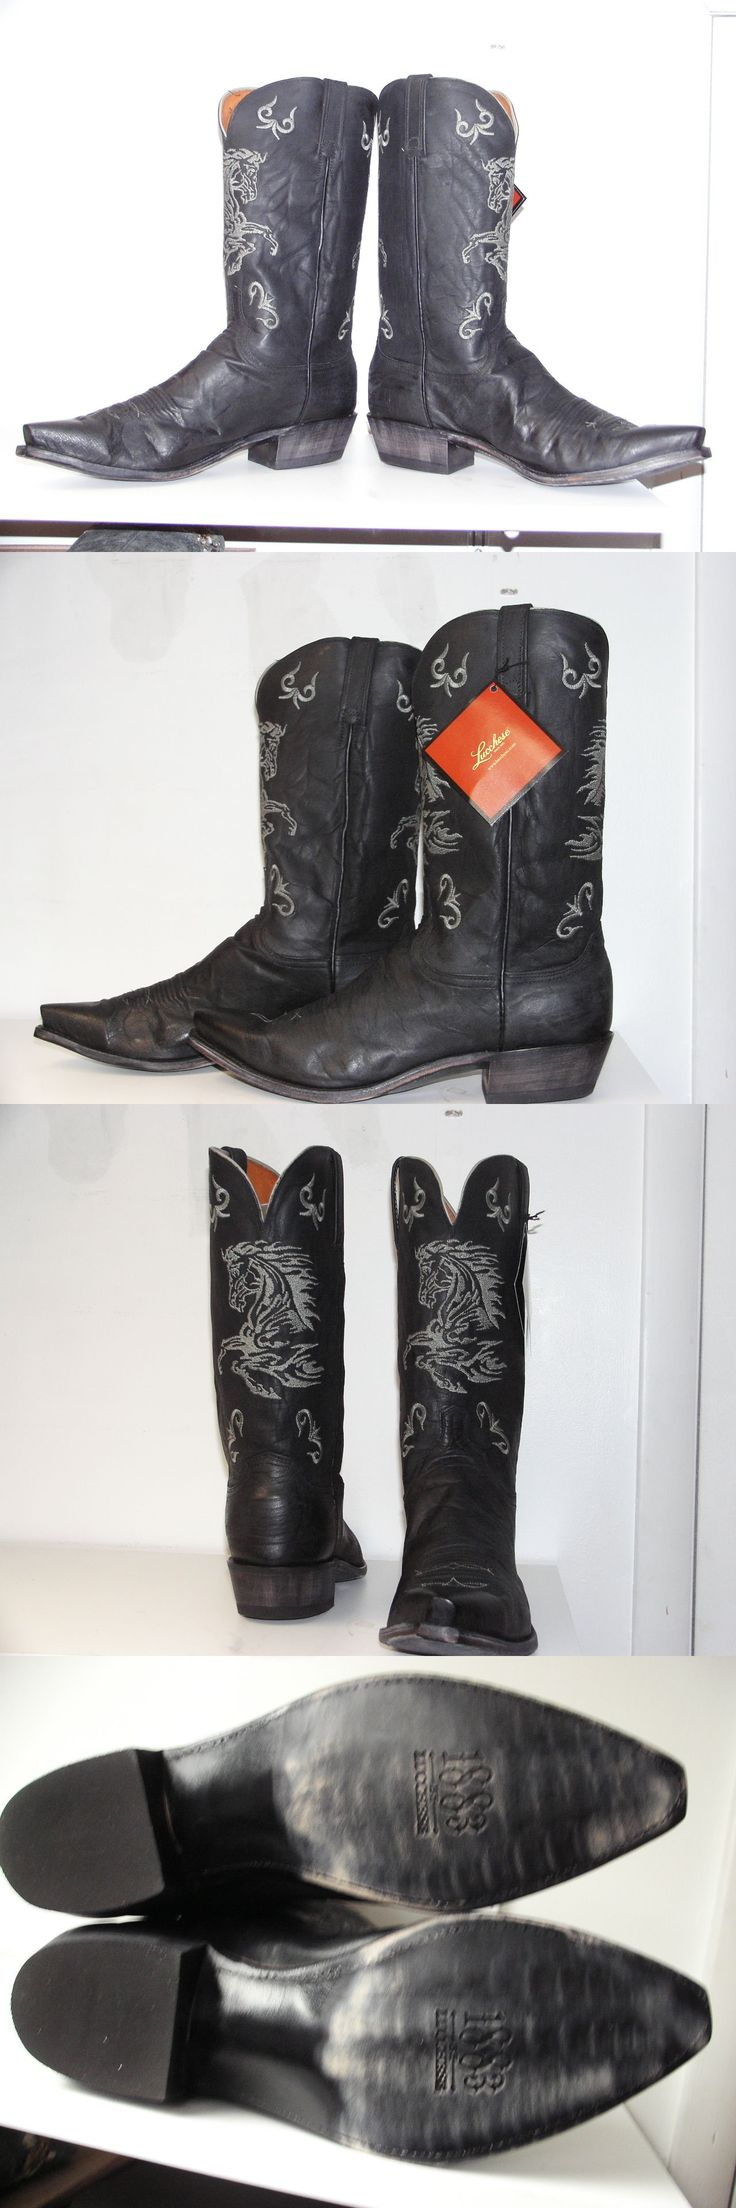 Western Boots 159002: New Lucchese 1883 Usa Men Matt Black Mad Dog Cowboy Boot N1630.54 Size 13 D -> BUY IT NOW ONLY: $199.95 on eBay!